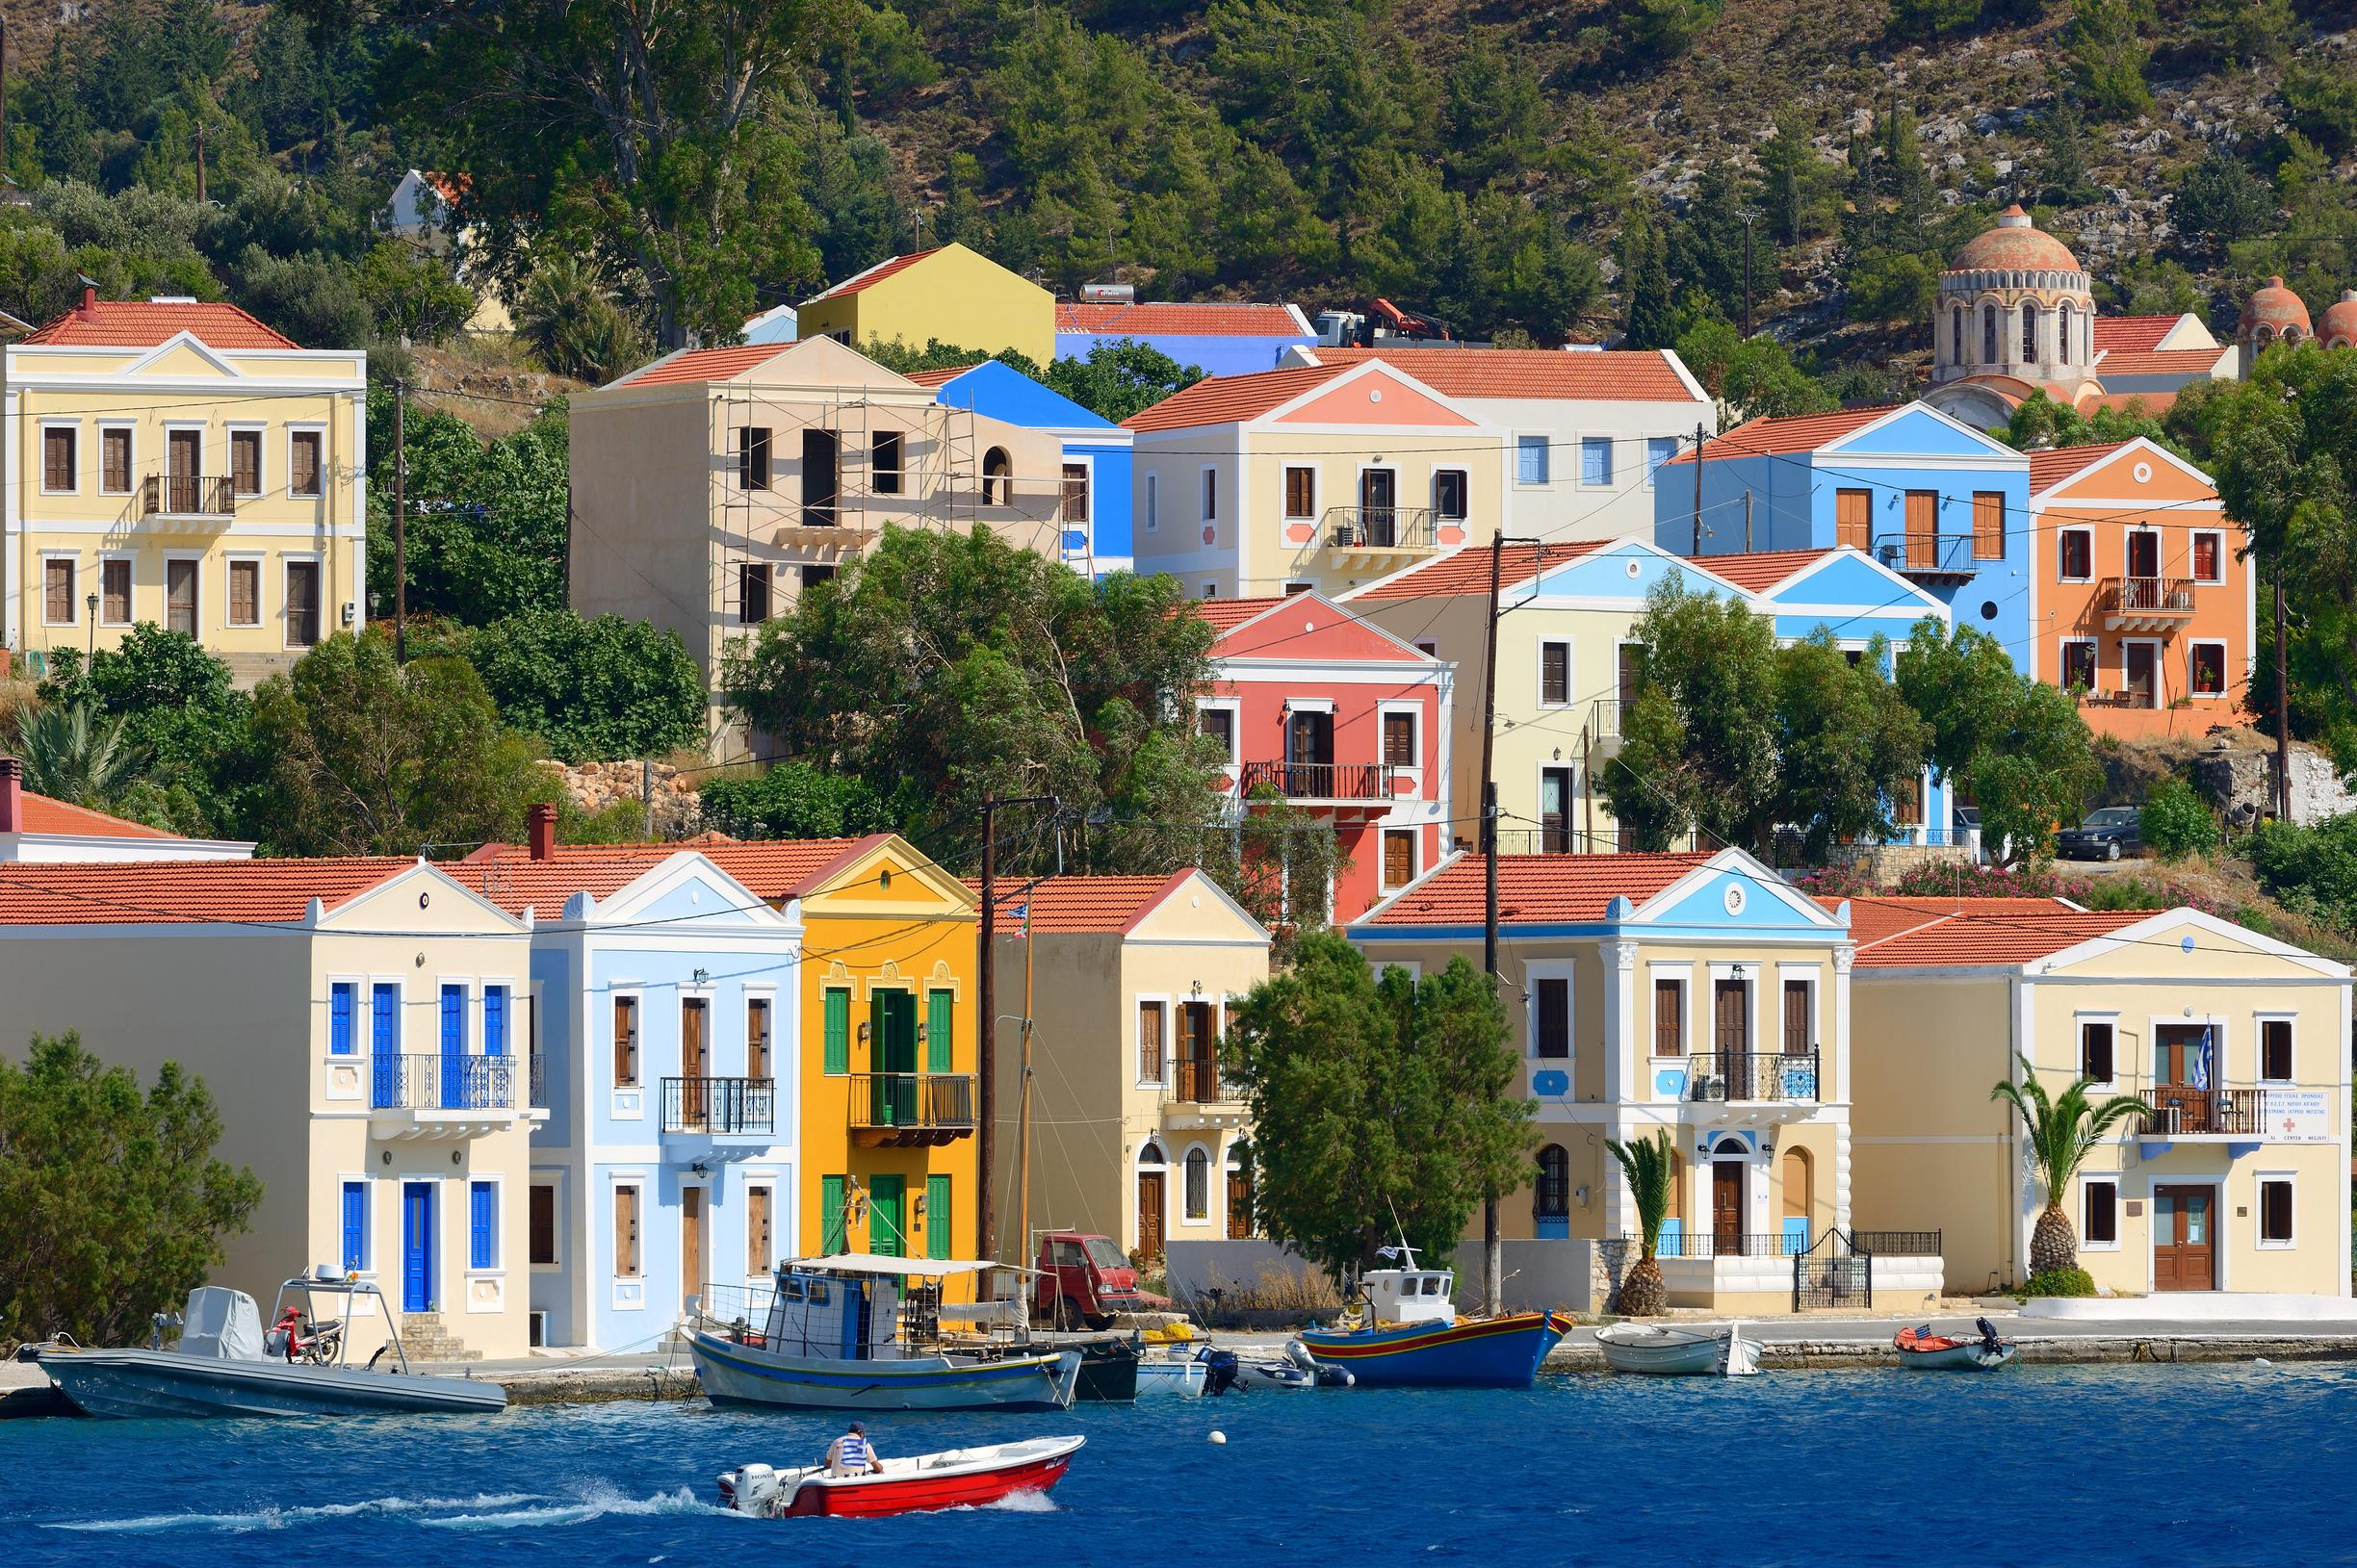 """<p>The pretty island of Kastellorizo, which lies 110km east of <a href=""""http://travel.aol.co.uk/guides/rhodes/"""" target=""""_blank"""">Rhodes</a>, has a main town that unfolds around the natural harbour with unique architecture and colourful houses. The island's is home to a cluster of islets and offers a wealth of marine life to discover in its clear blue seas. Around the island you'll find cafes, tavernas and shops. The medieval castle and archaeological and folklore museums are several top attractions to visit when you're not at the beach. As tourism is yet to develop you'll only find a selection of hotels - a good place to experience true Greek island life.</p>"""